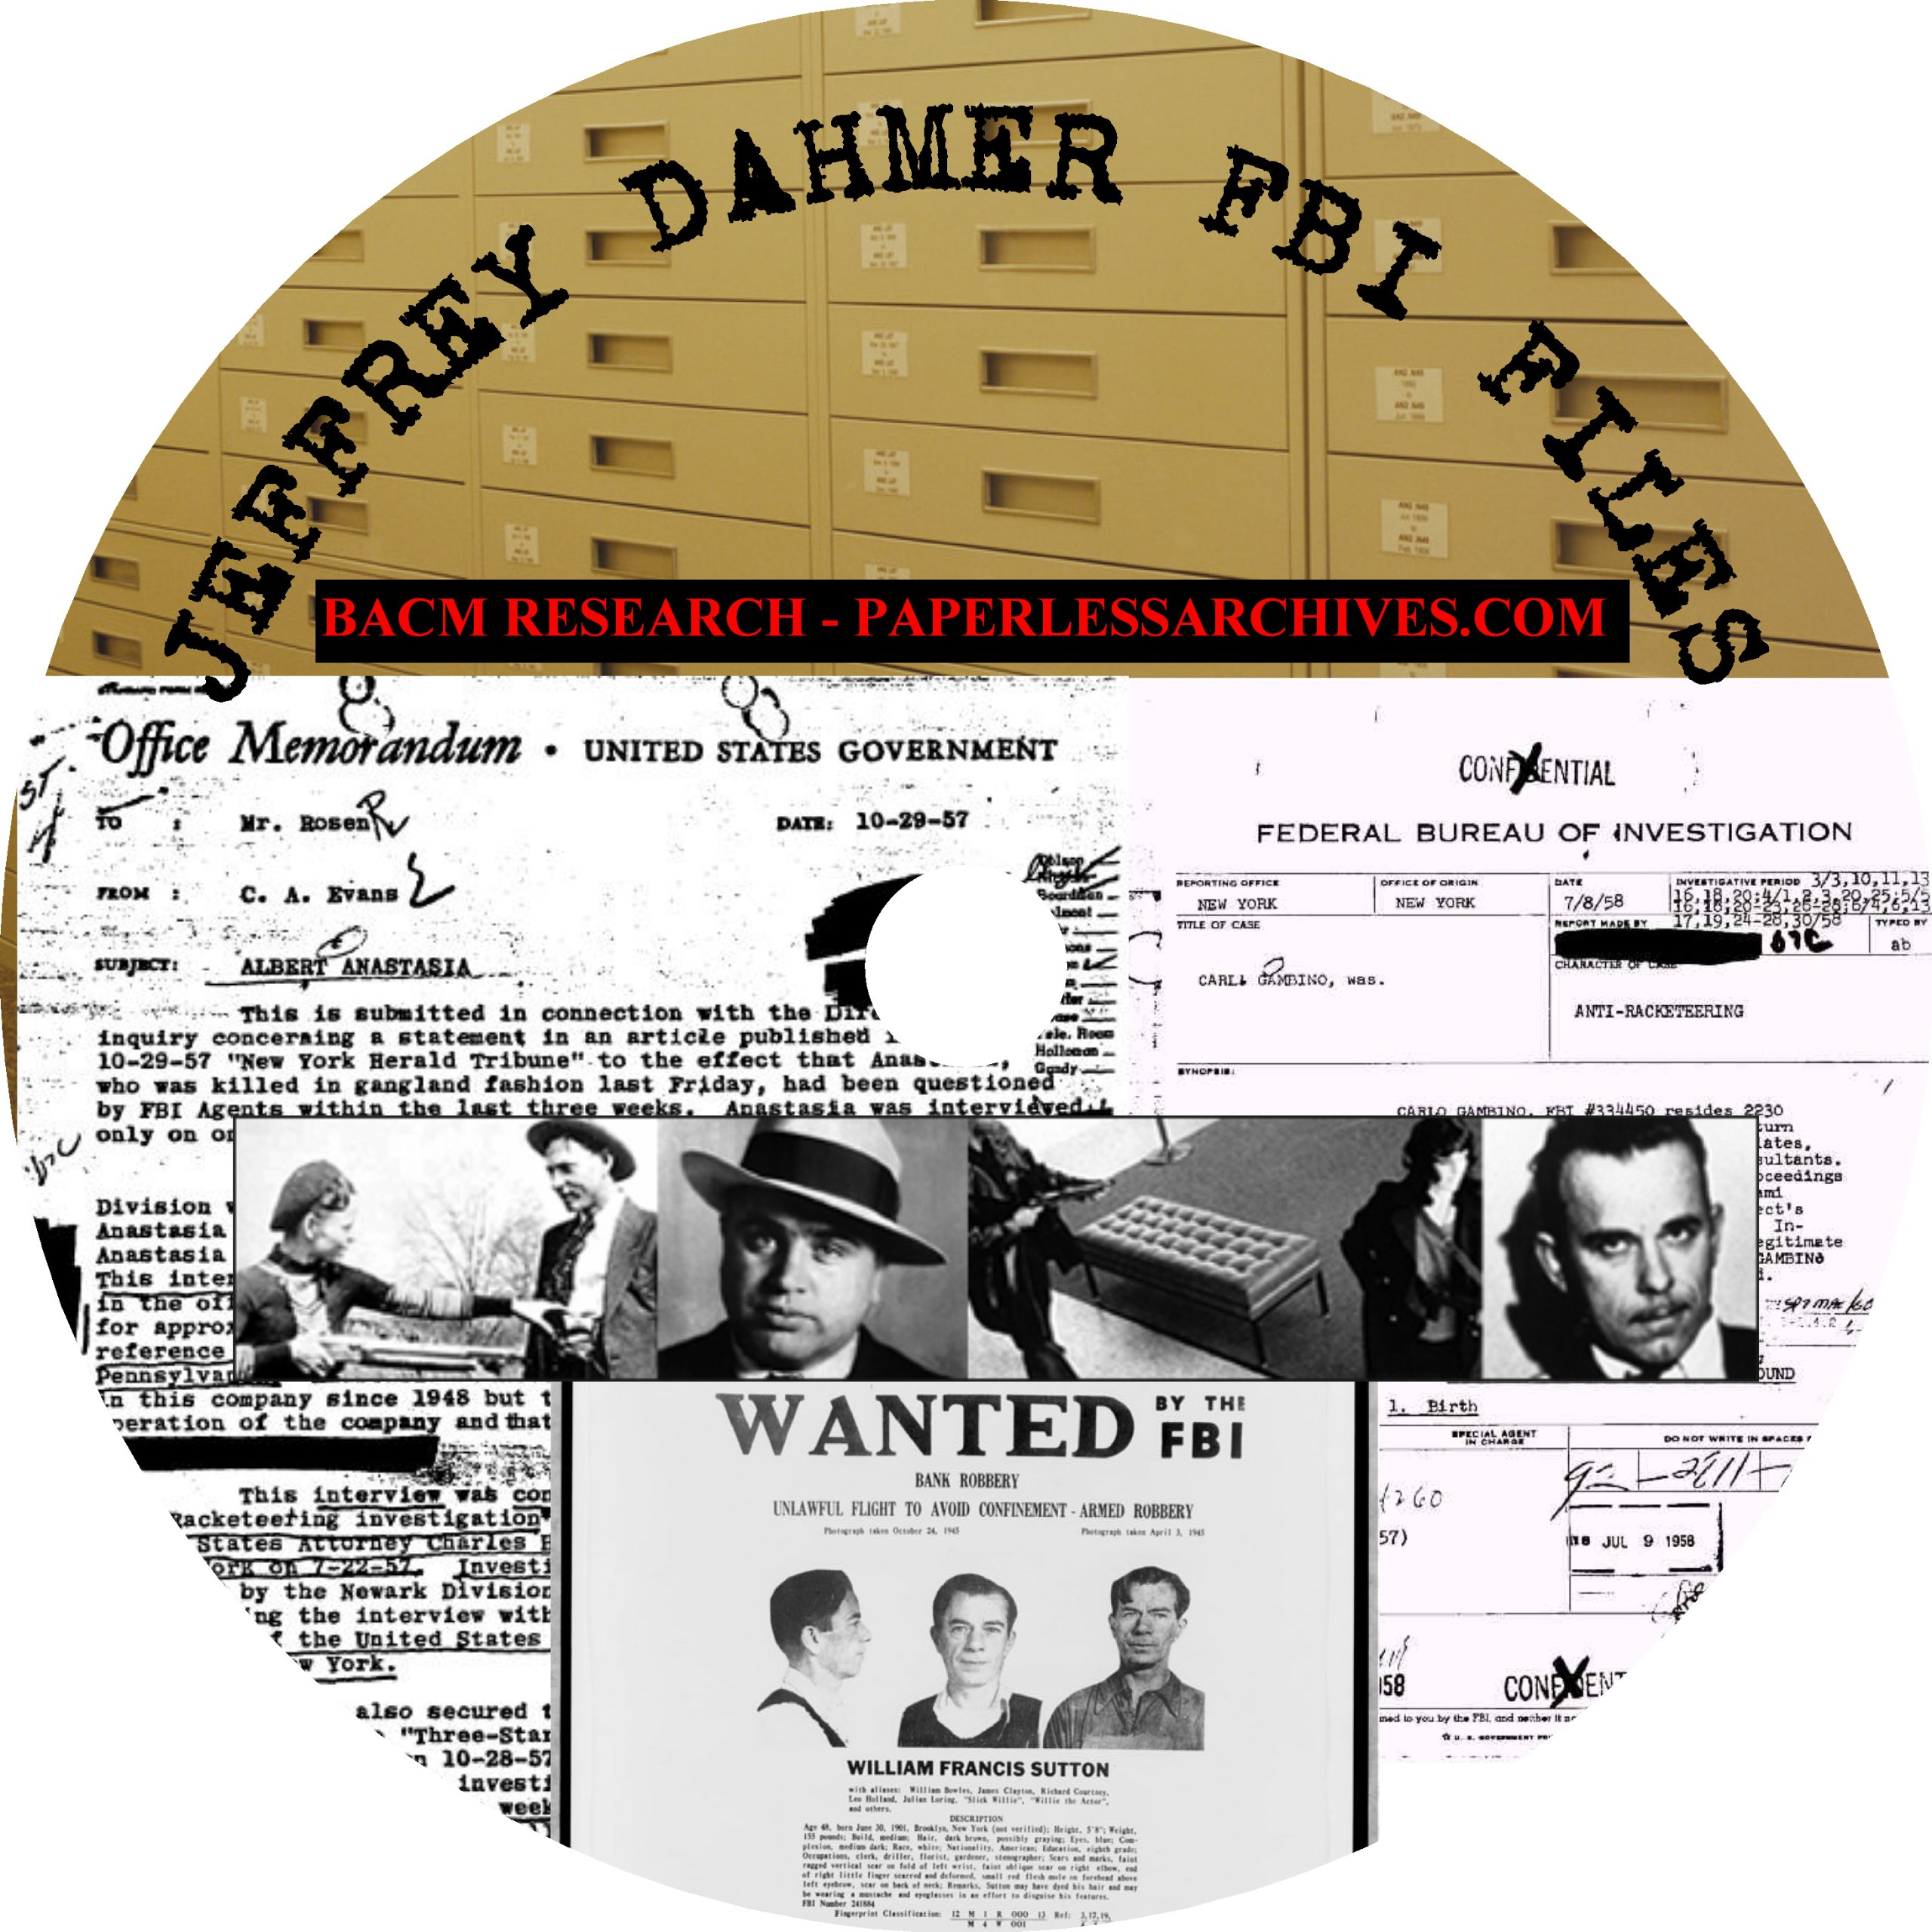 Jeffrey Dahmer Fbi Files Bacm Research Amazon Com Books